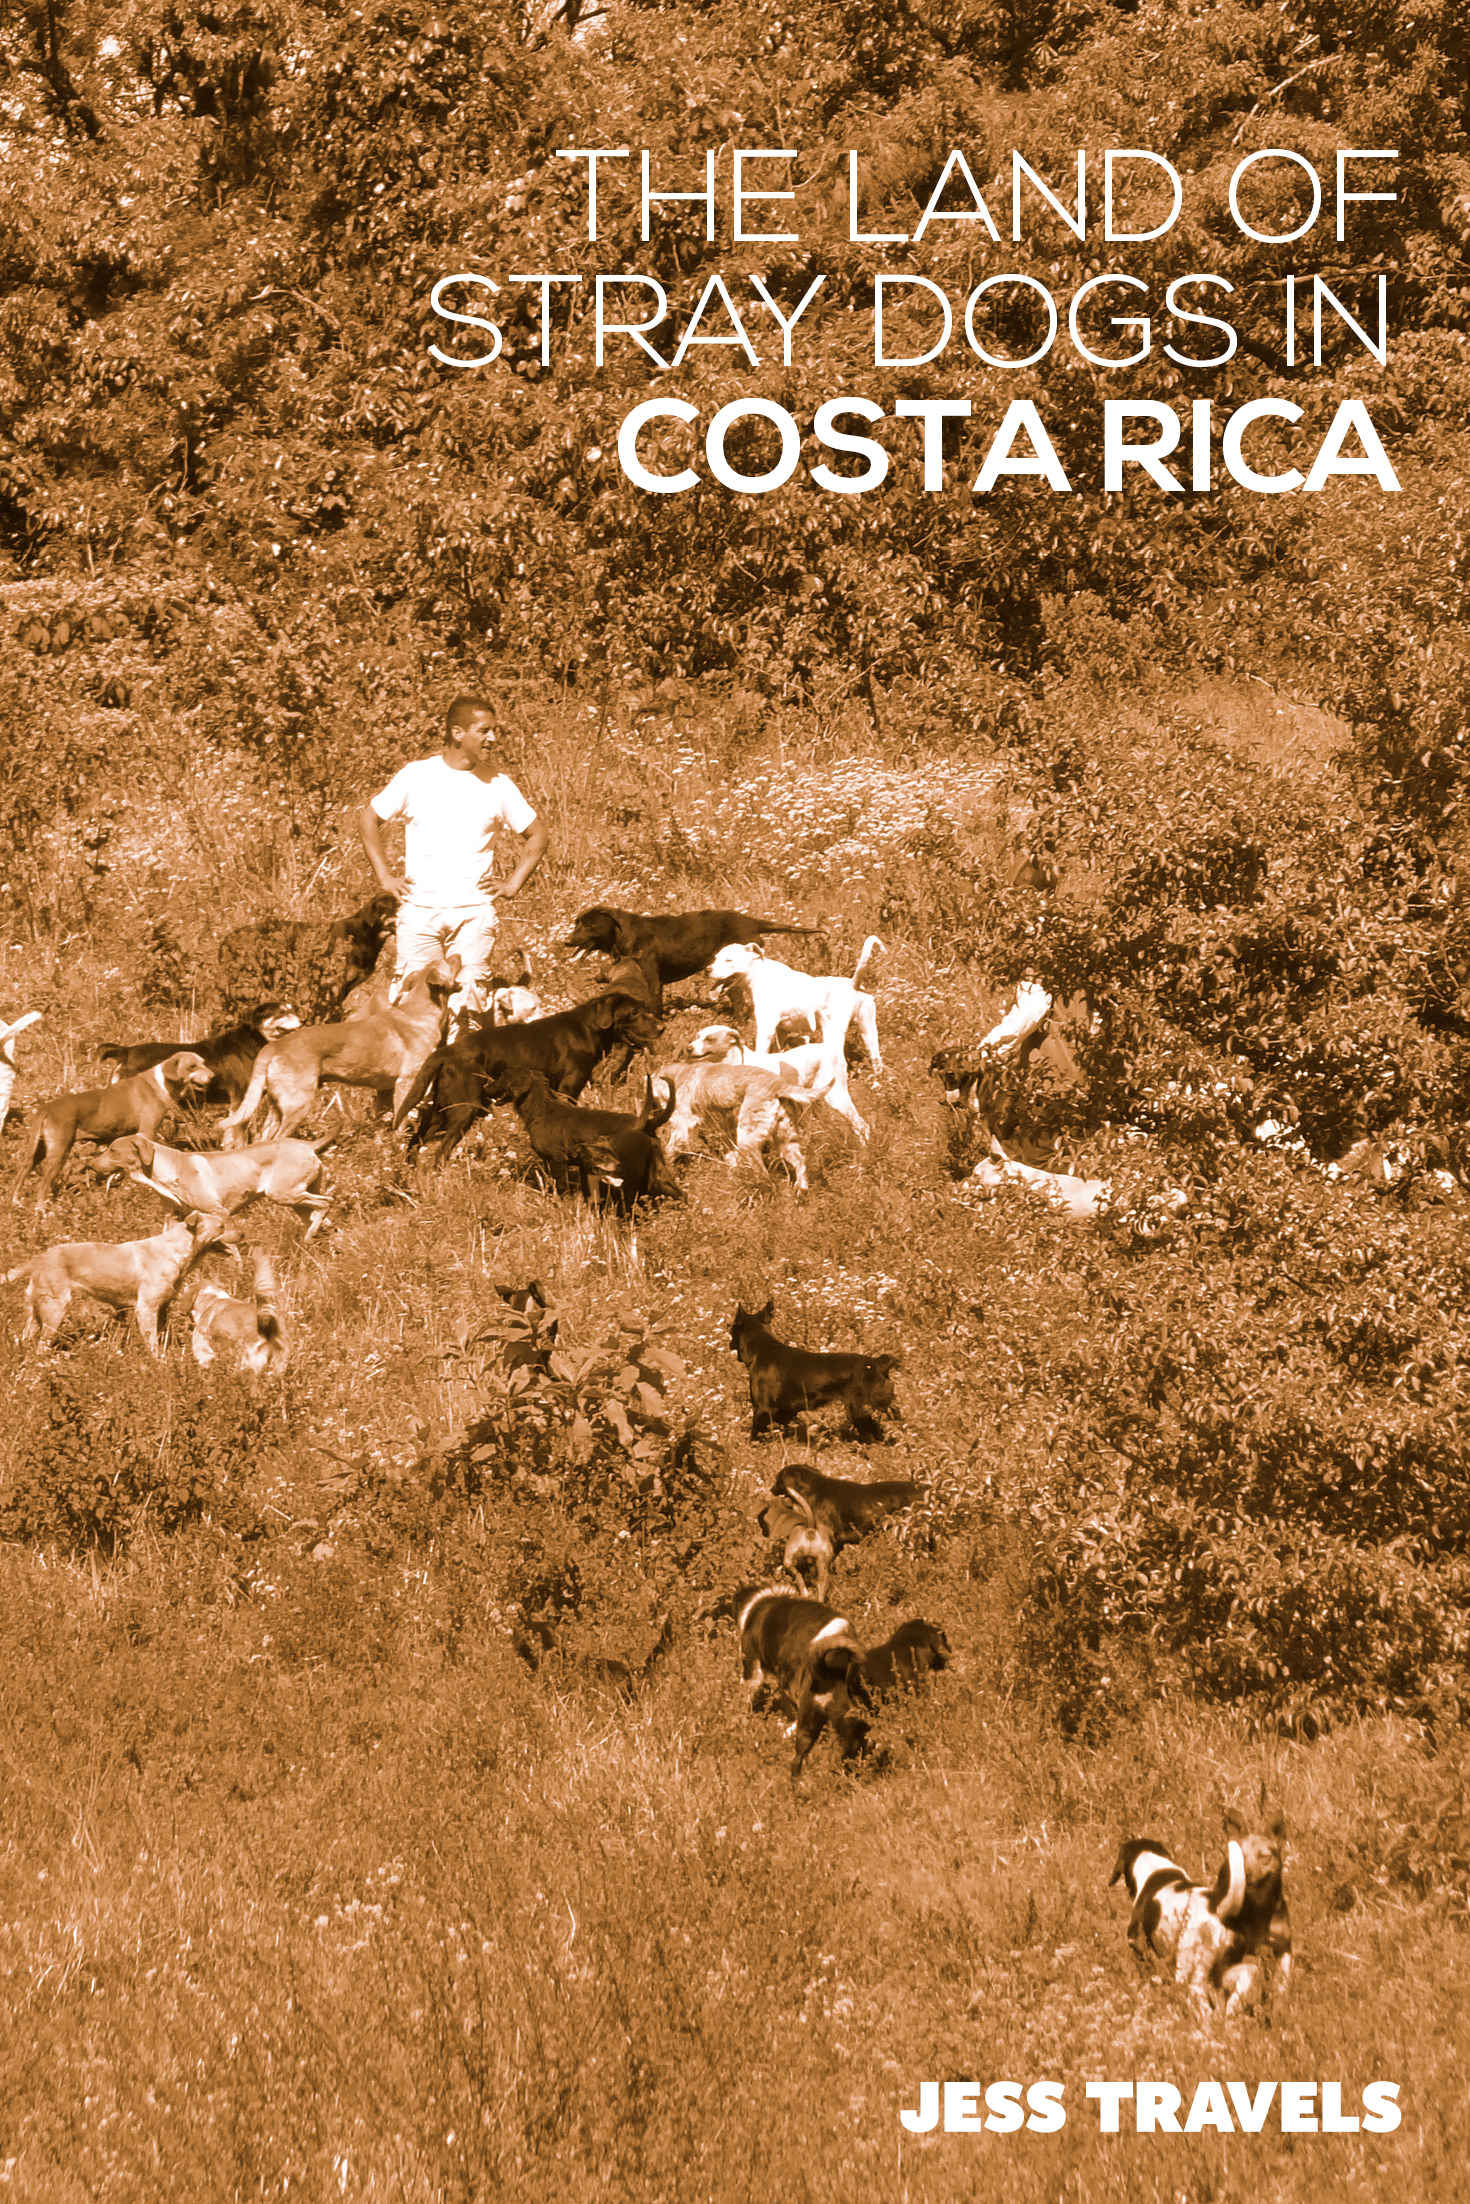 The Land of Stray Dogs in Costa Rica. How to visit, where is it? and what is it like to be surrounded by hundreads of friendly dogs! #CostRica #TravelCostaRica #dogs